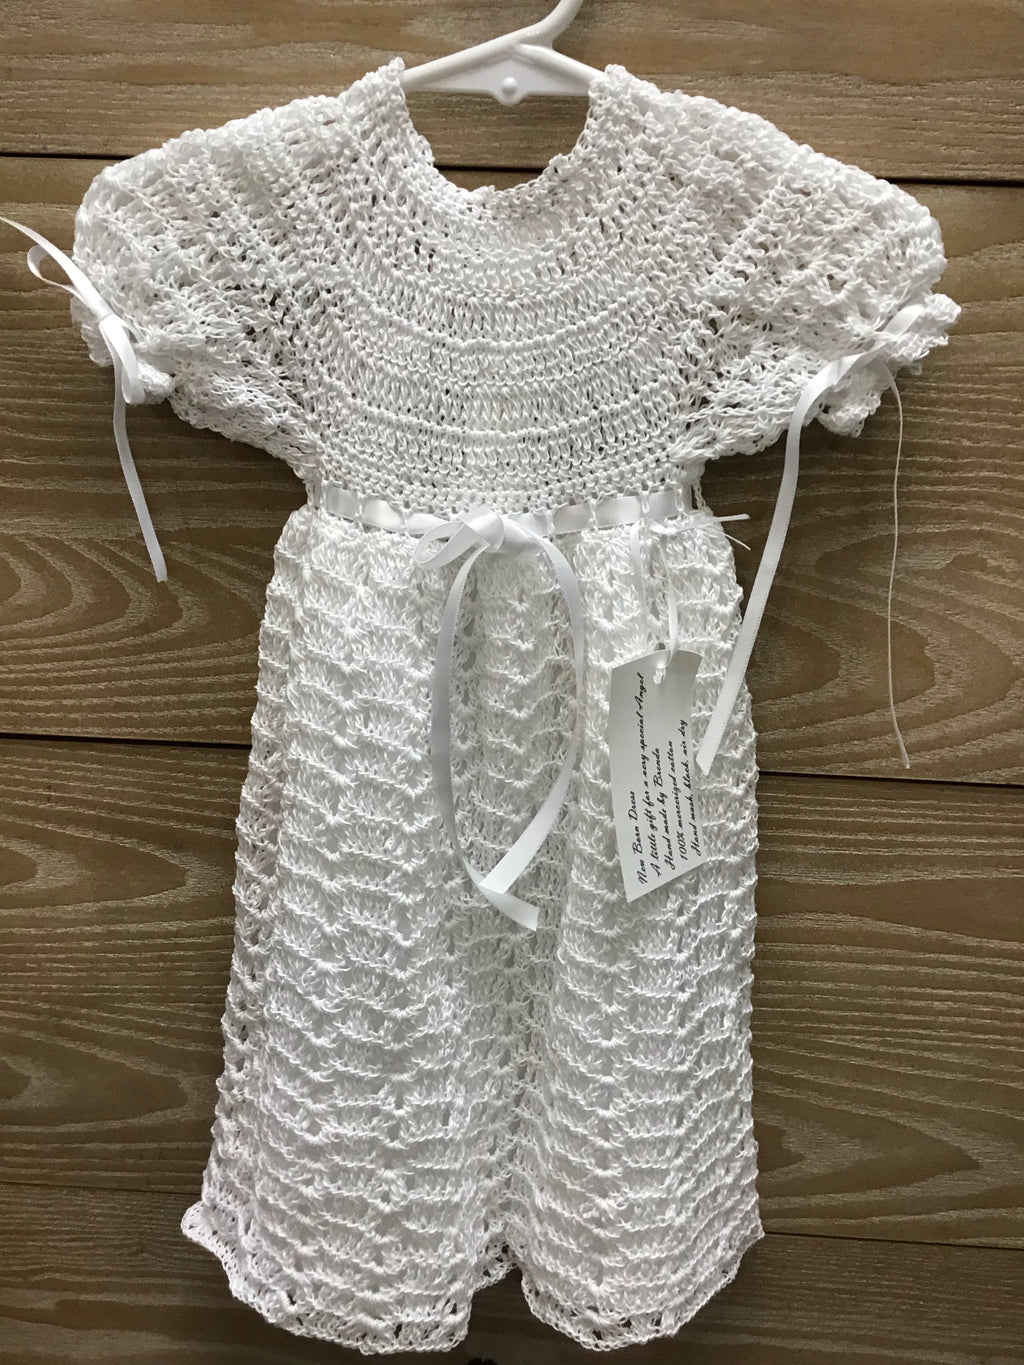 Brenda's Designs Crocheted Newborn Gown